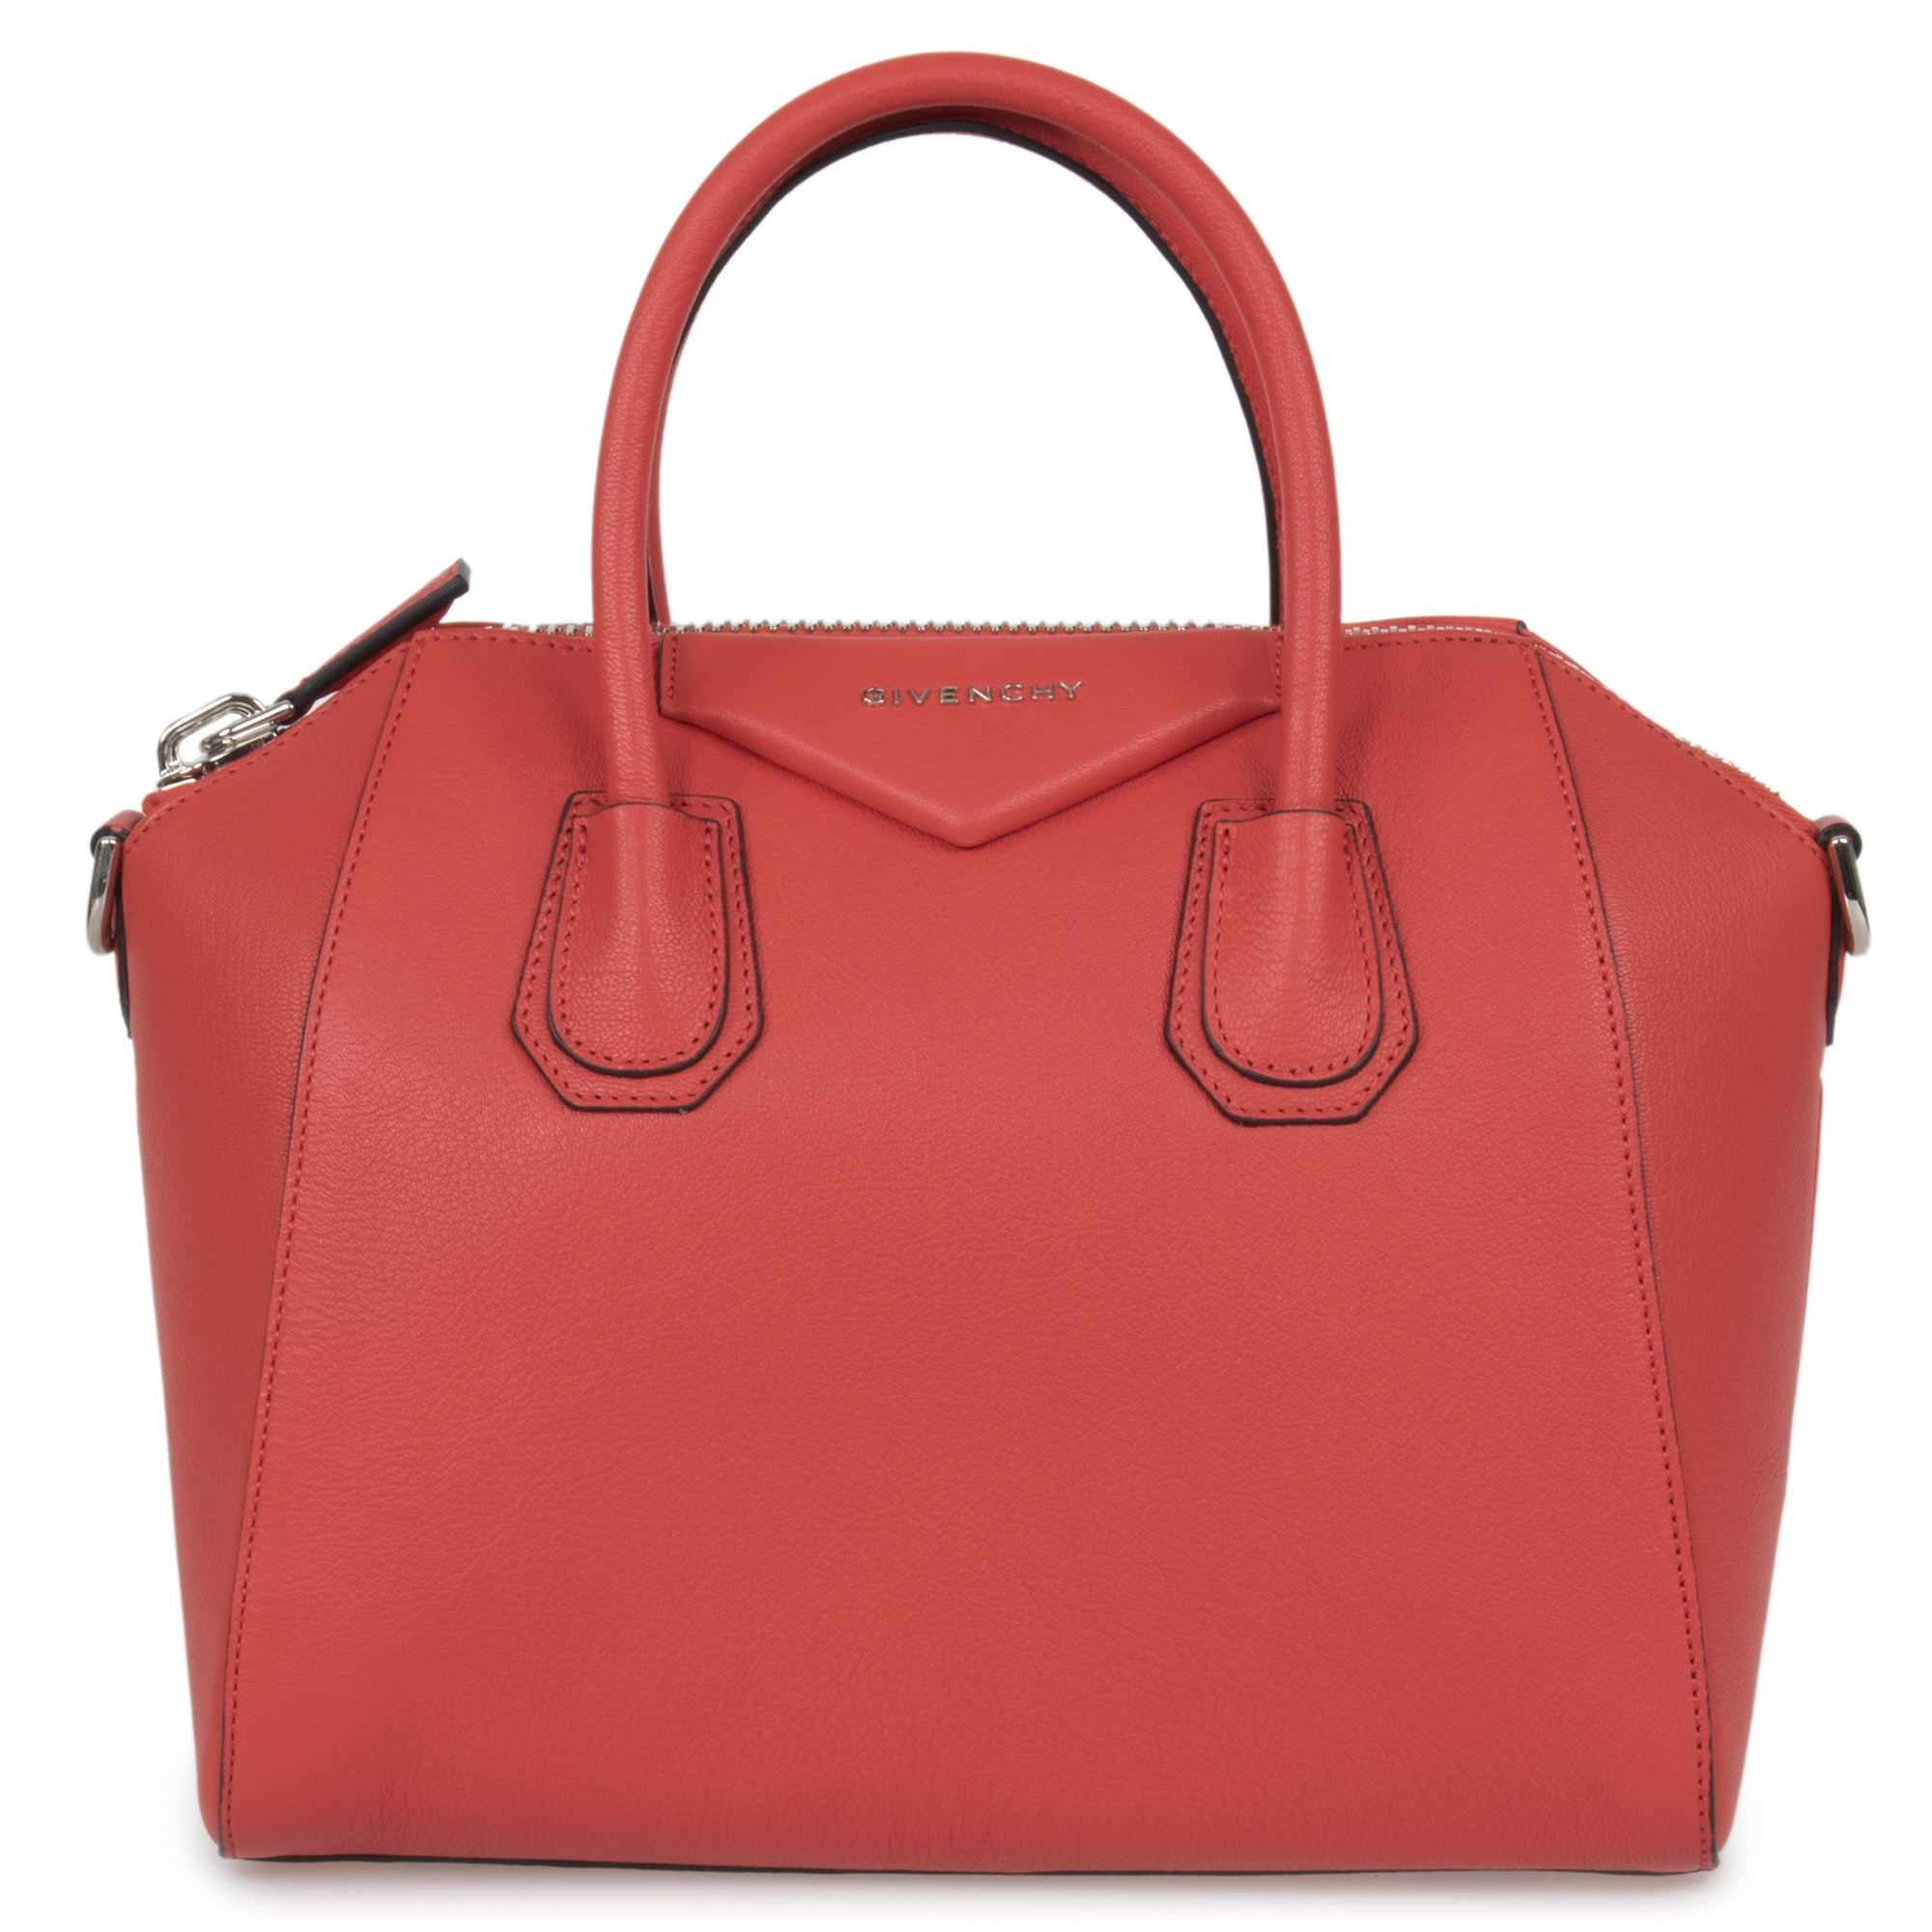 Image is loading Givenchy-Givenchy-Antigona-Sugar-Goatskin-Leather-Satchel- Bag- 12d138d81128a